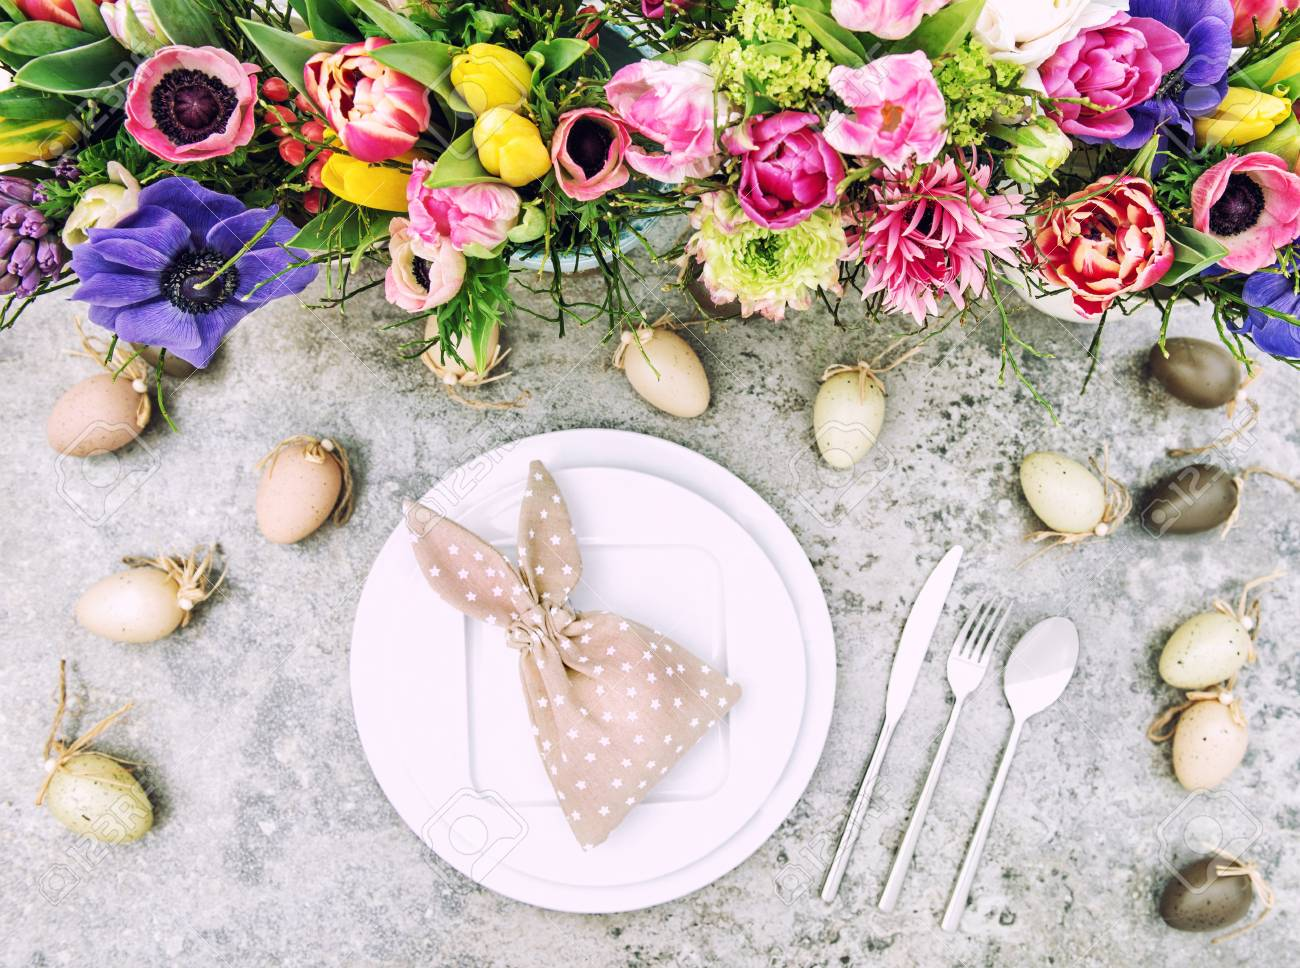 Table Decoration Spring Flowers And Easter Eggs Vintage Style Toned